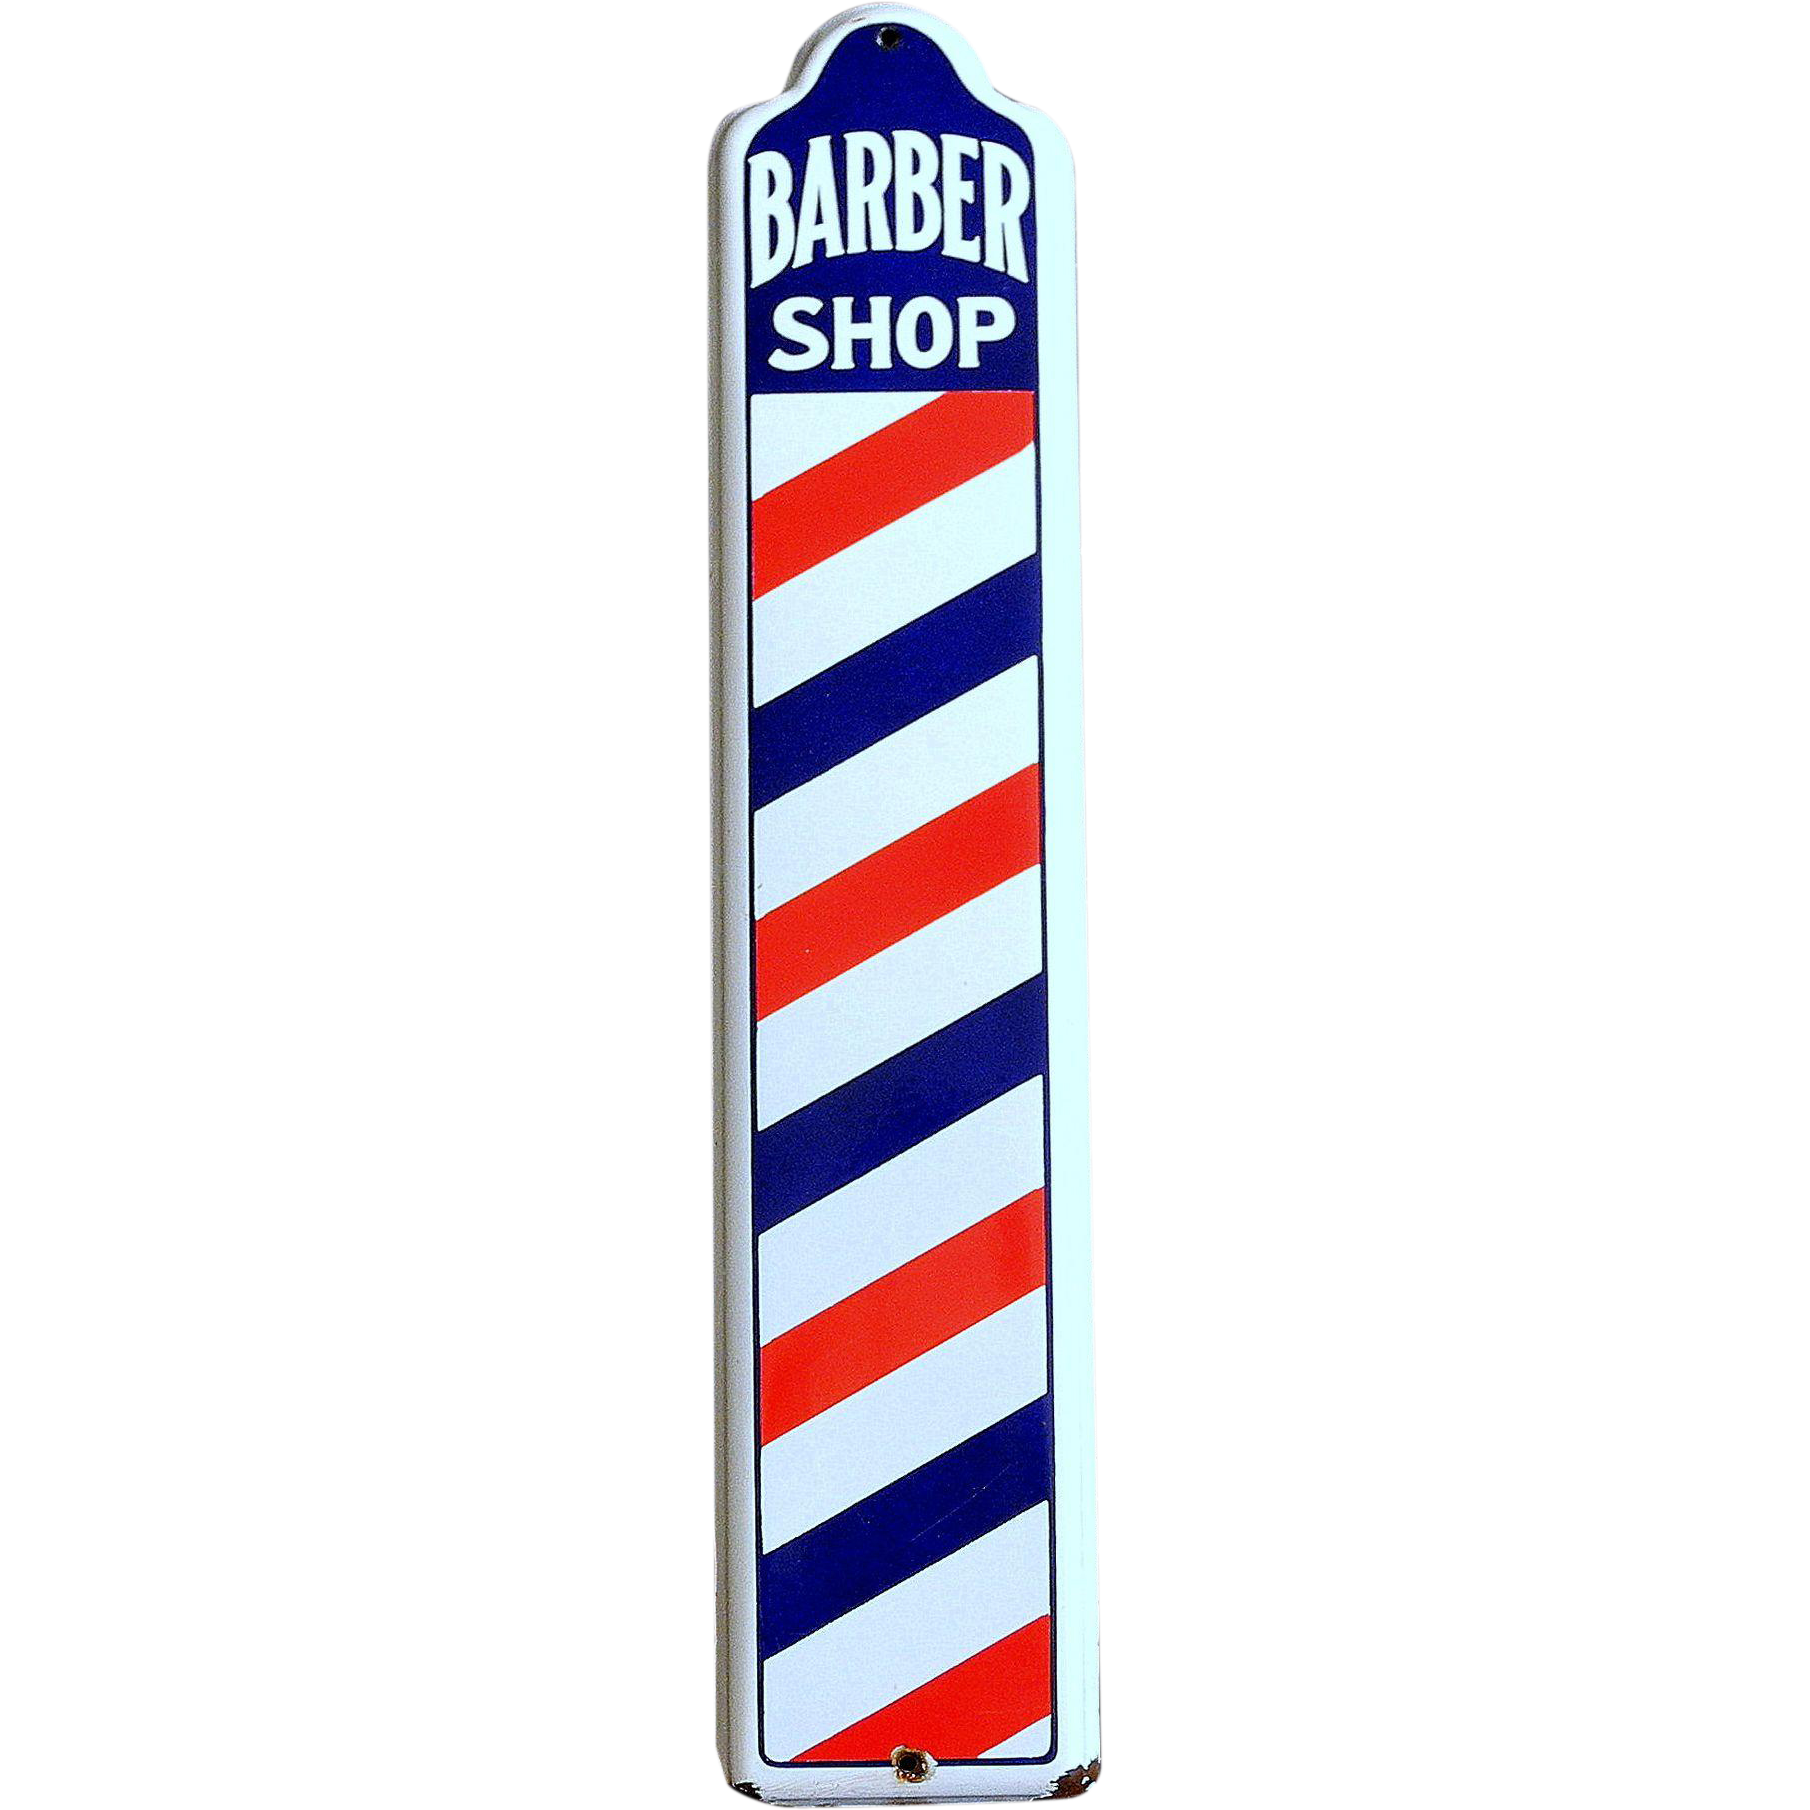 Antique barber shop sign - Original Vintage Barber Shop Sign Circa 1940